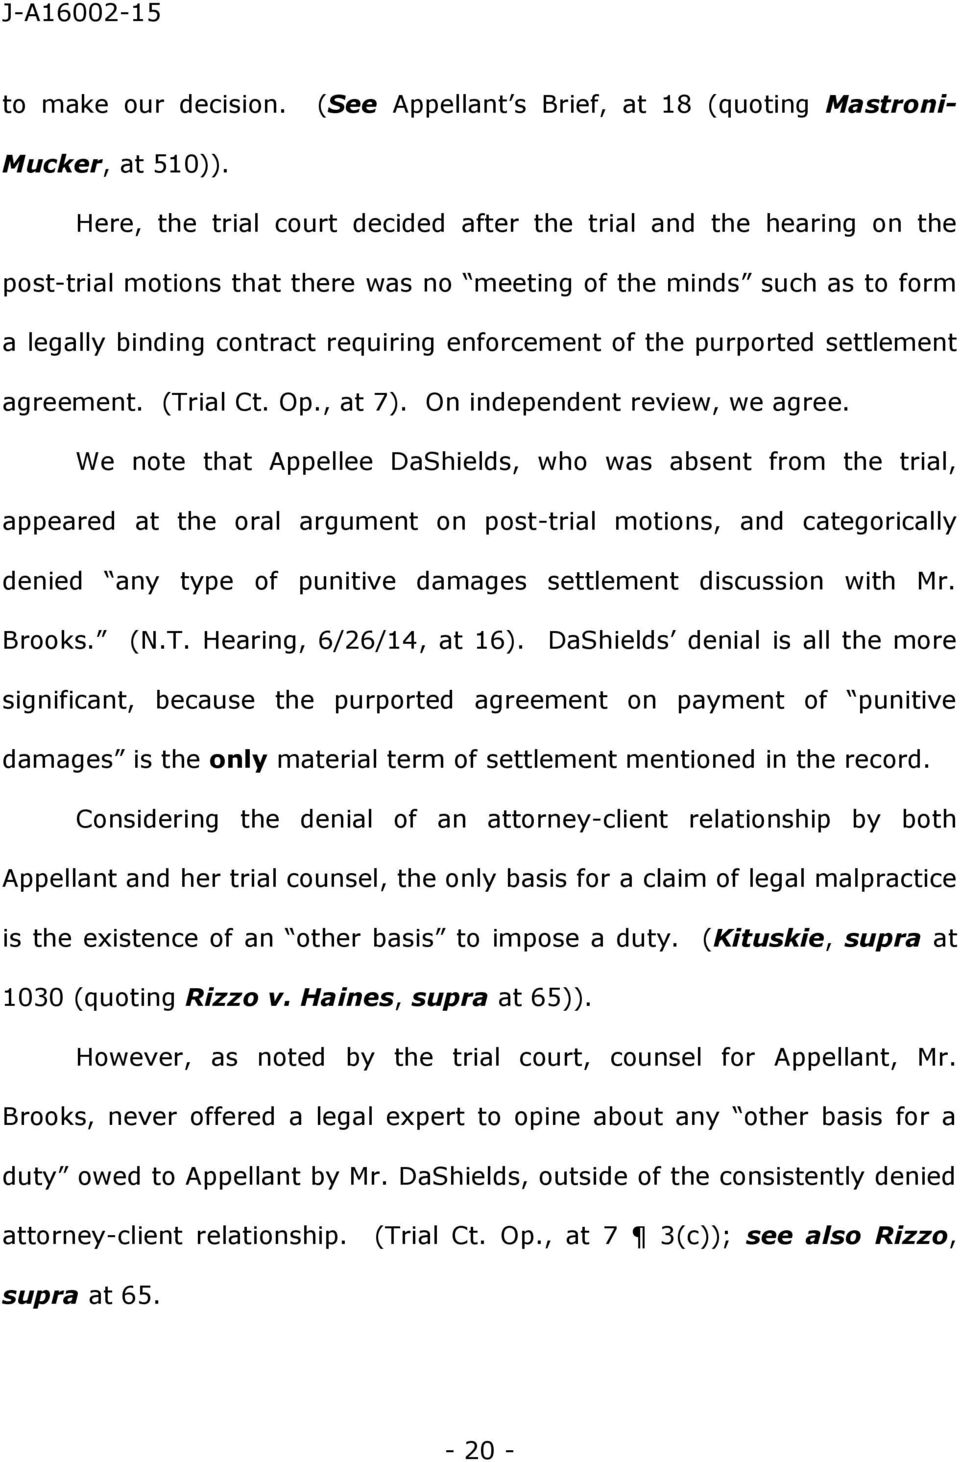 purported settlement agreement. (Trial Ct. Op., at 7). On independent review, we agree.